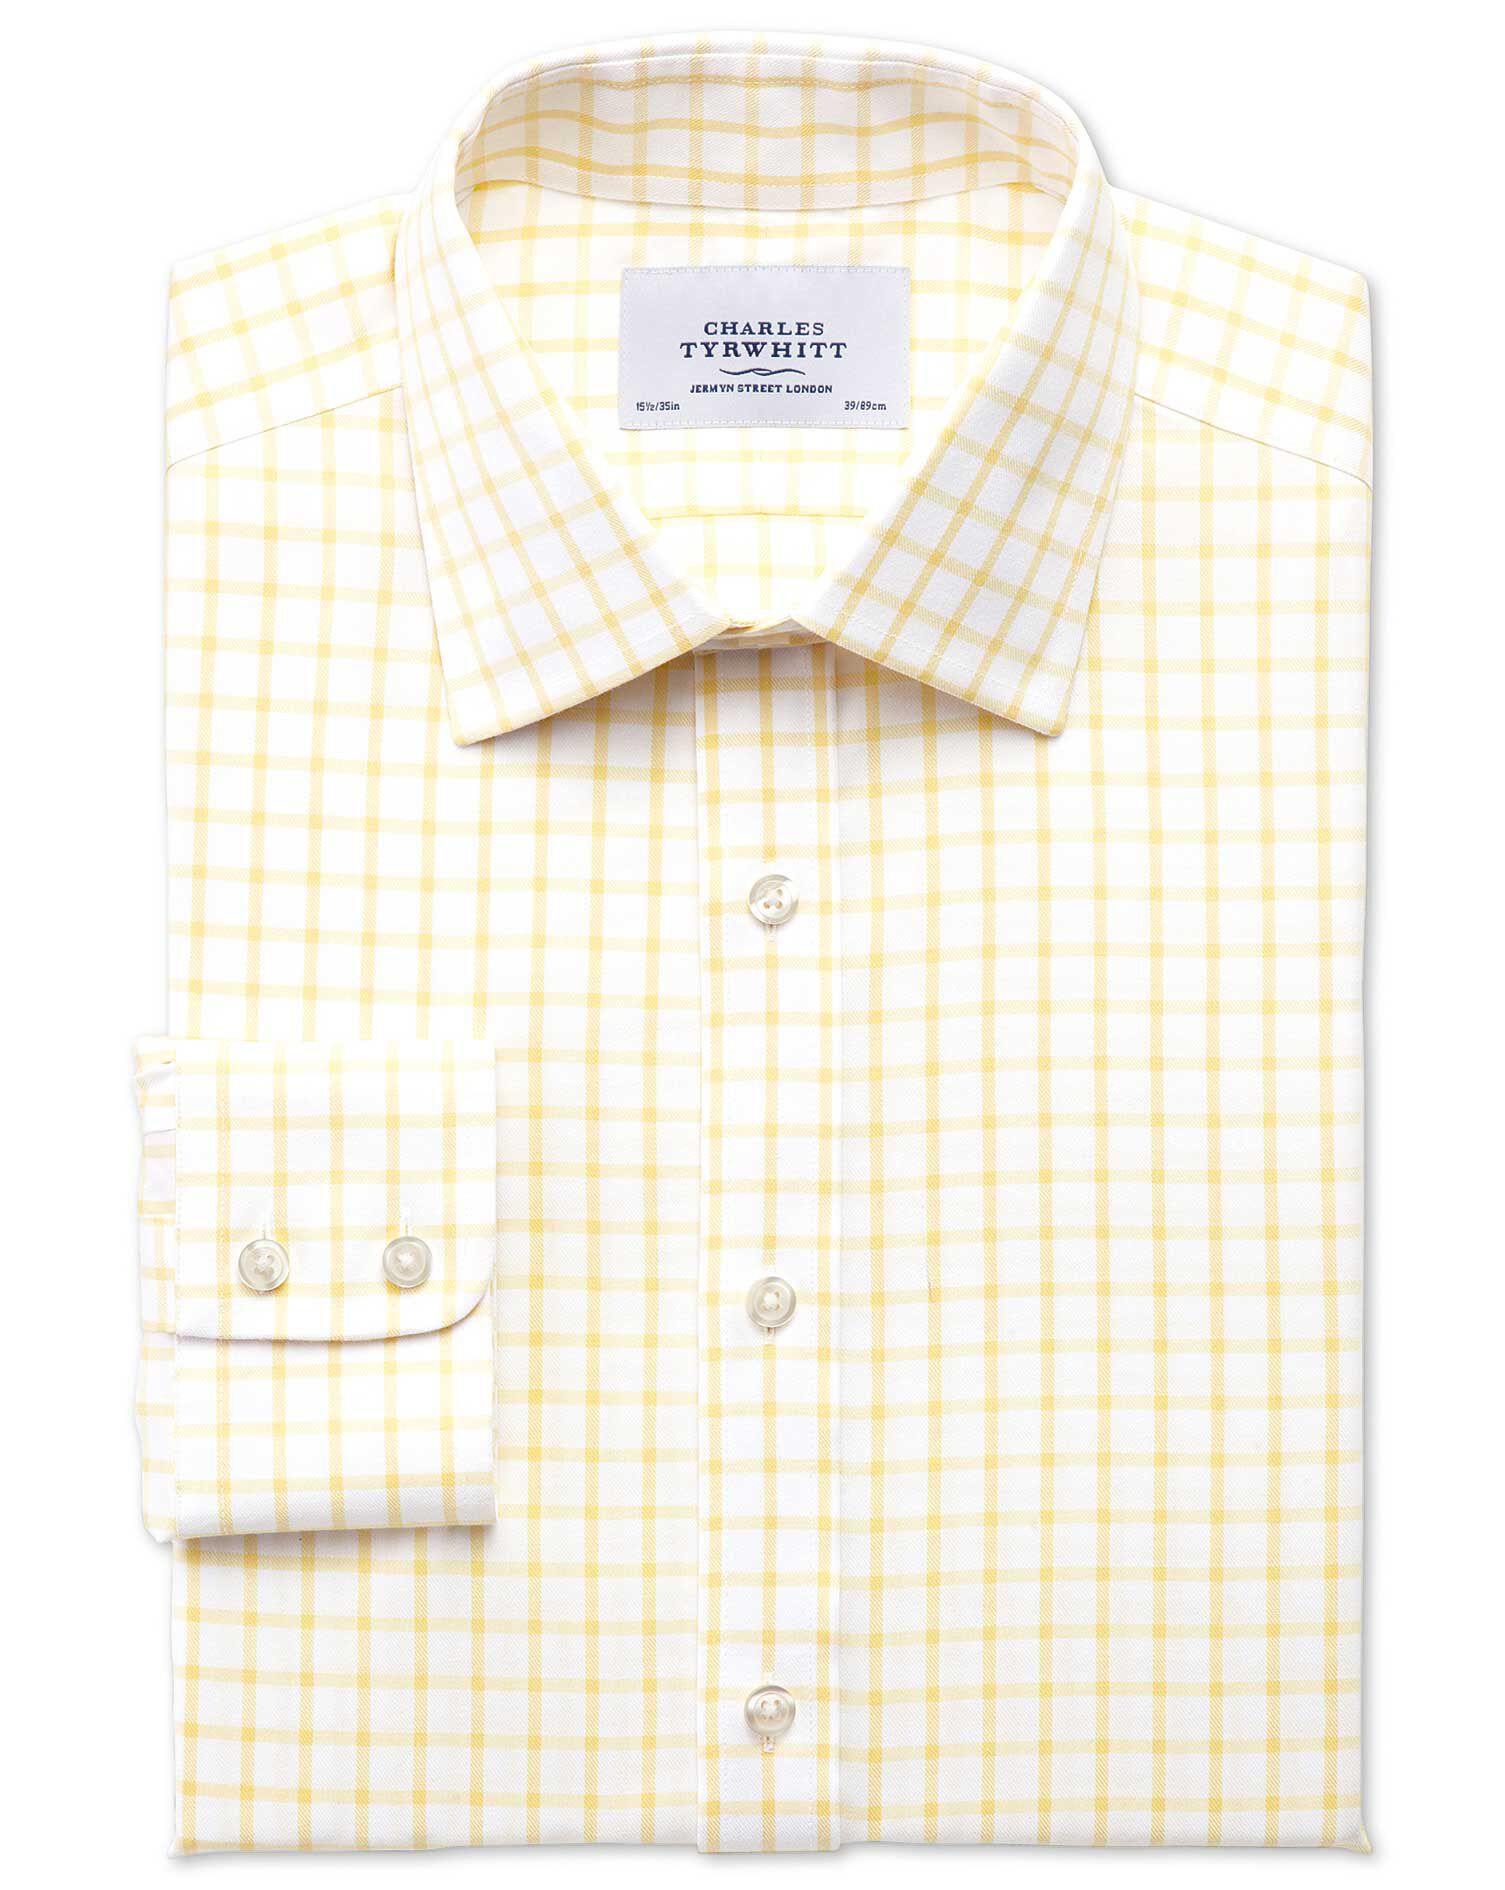 Extra Slim Fit Non-Iron Twill Grid Check Light Yellow Cotton Formal Shirt Single Cuff Size 15.5/34 b